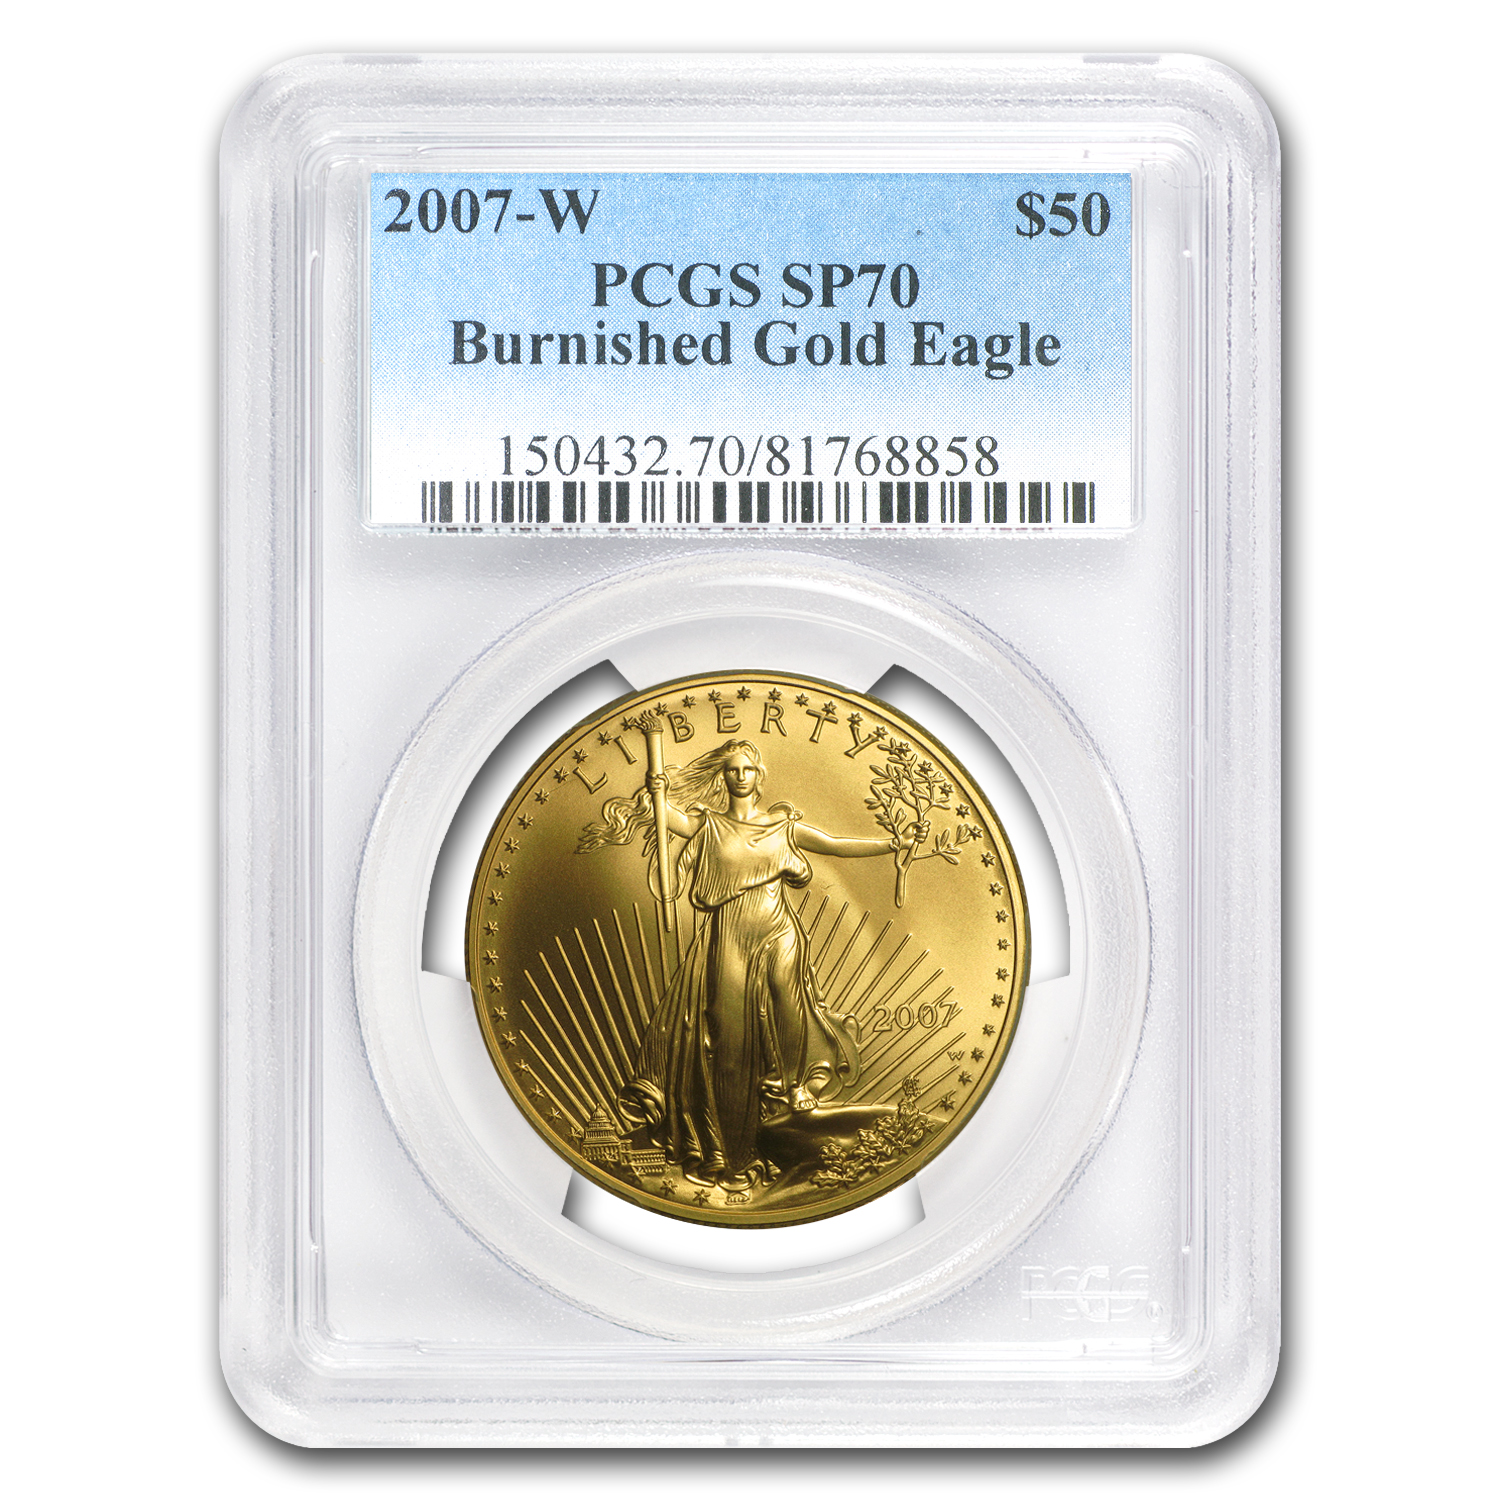 2007-W 1 oz Burnished Gold Eagle SP-70 PCGS